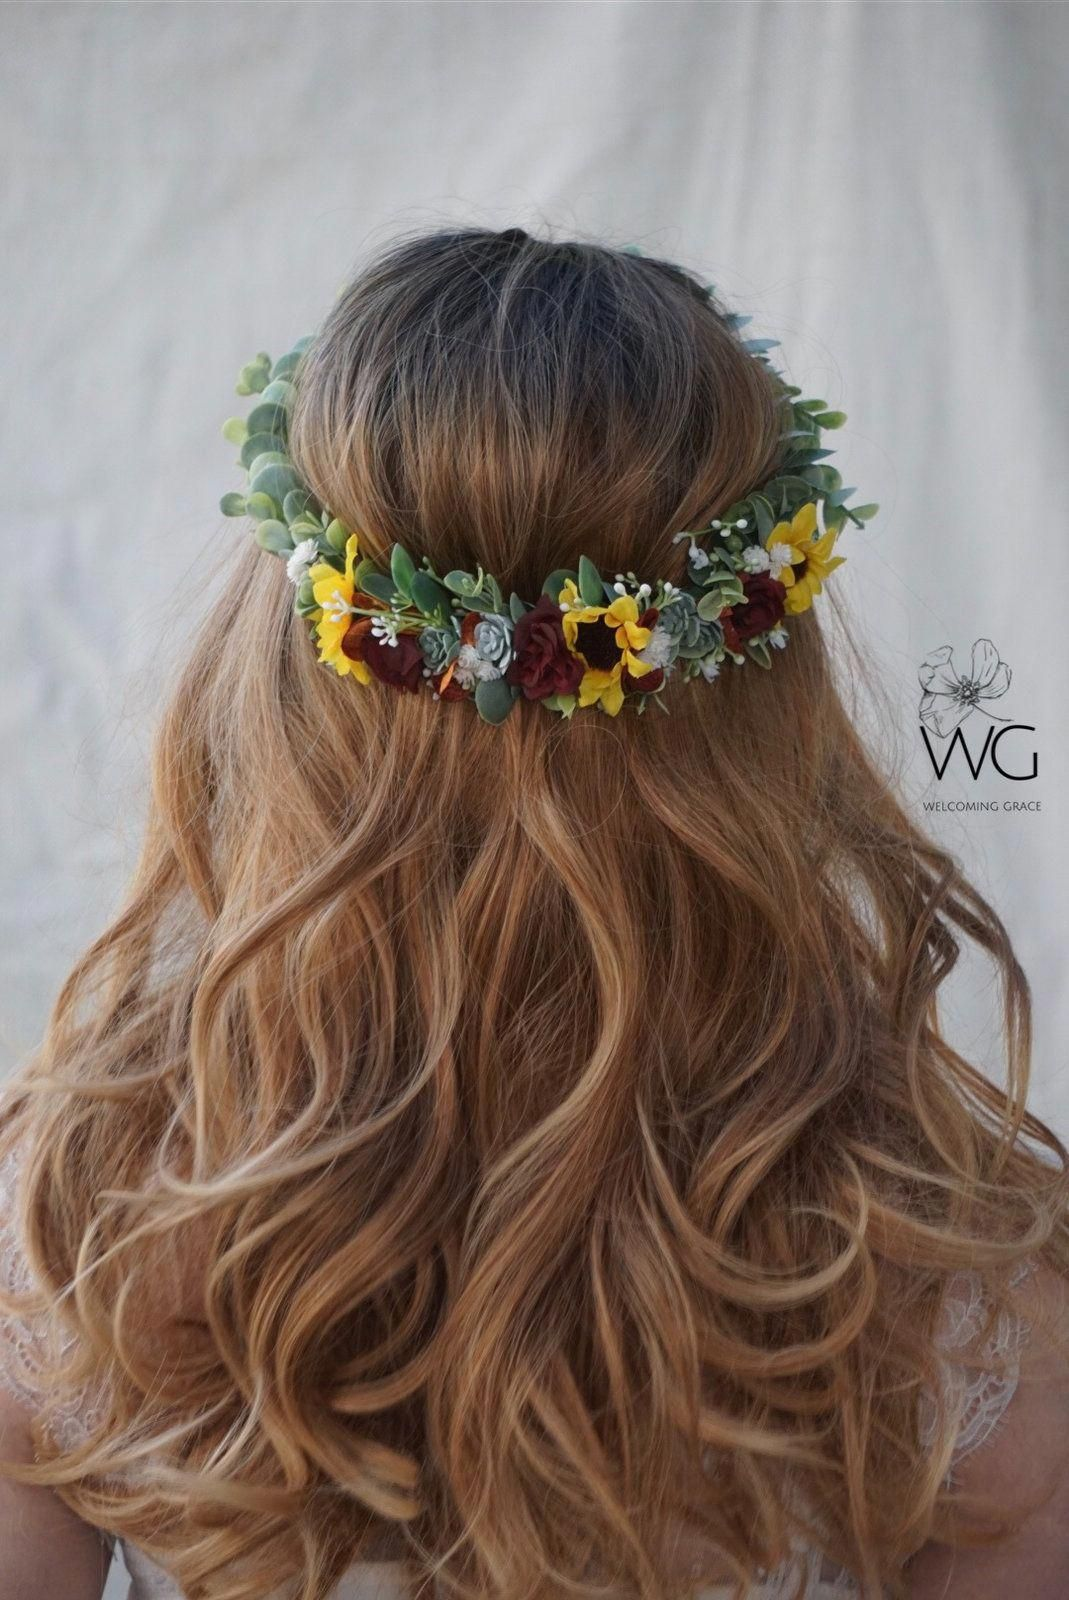 Items similar to Sunflower succulent crown, burgundy sunflower crown, baby's breath sunflower crown, autumn floral headpiece, flower crown wedding on Etsy